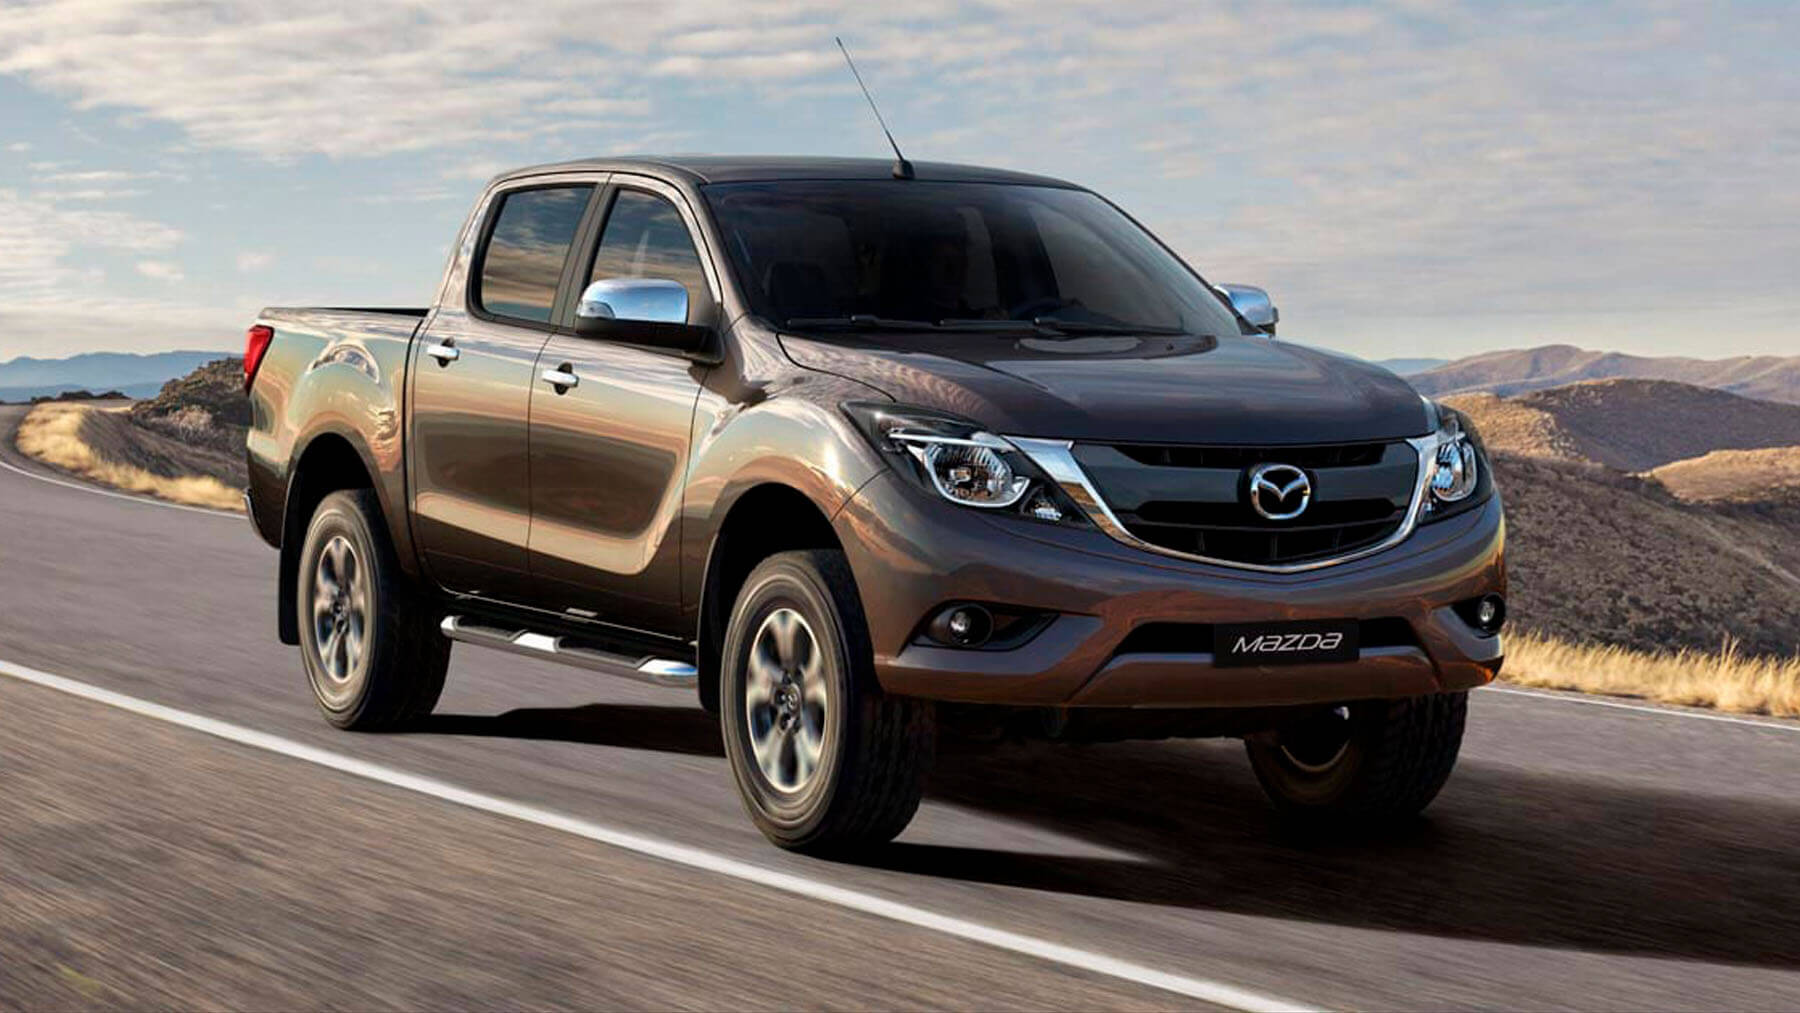 Mazda Mazda BT-50 Doble Cabina 2.2 SDX High 6MT 4x4 Diésel (E5) RADIO MULTIMEDIA - Galería interior - imágen 0